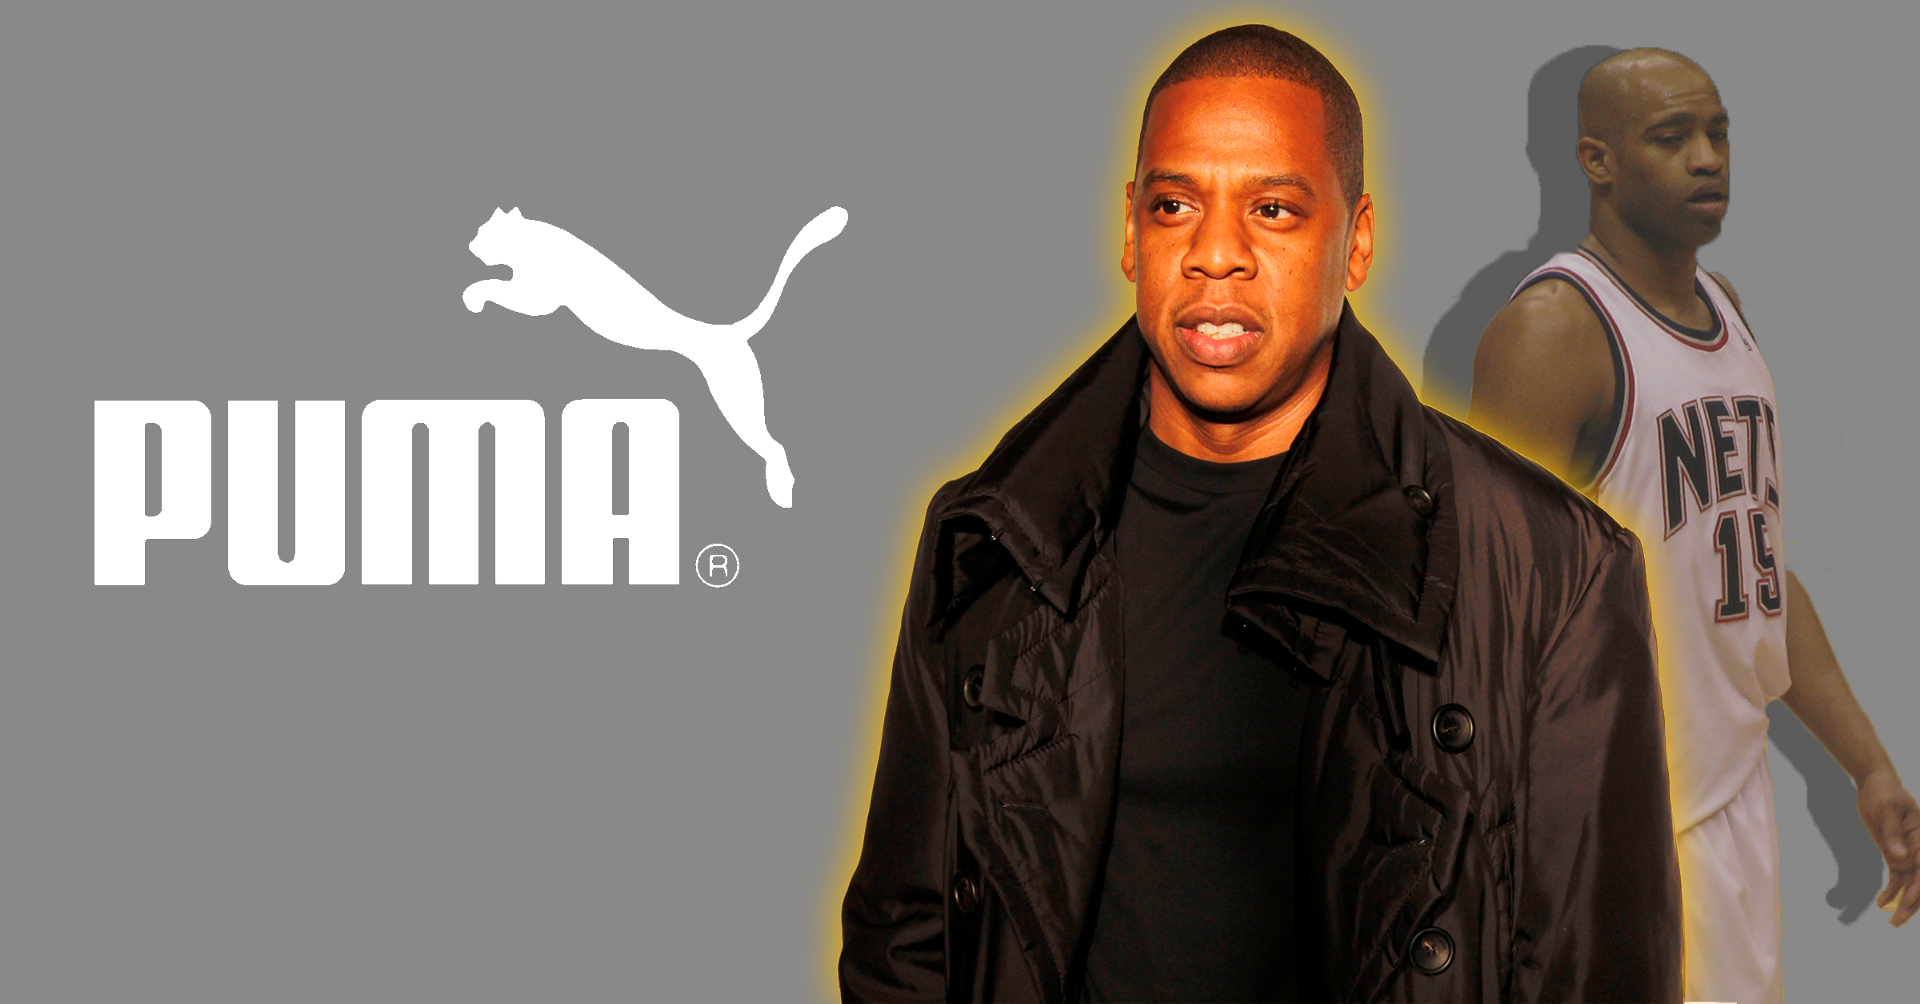 Pumas Big Pre Draft Gamble Will Disrupt The Sneaker Industry, One